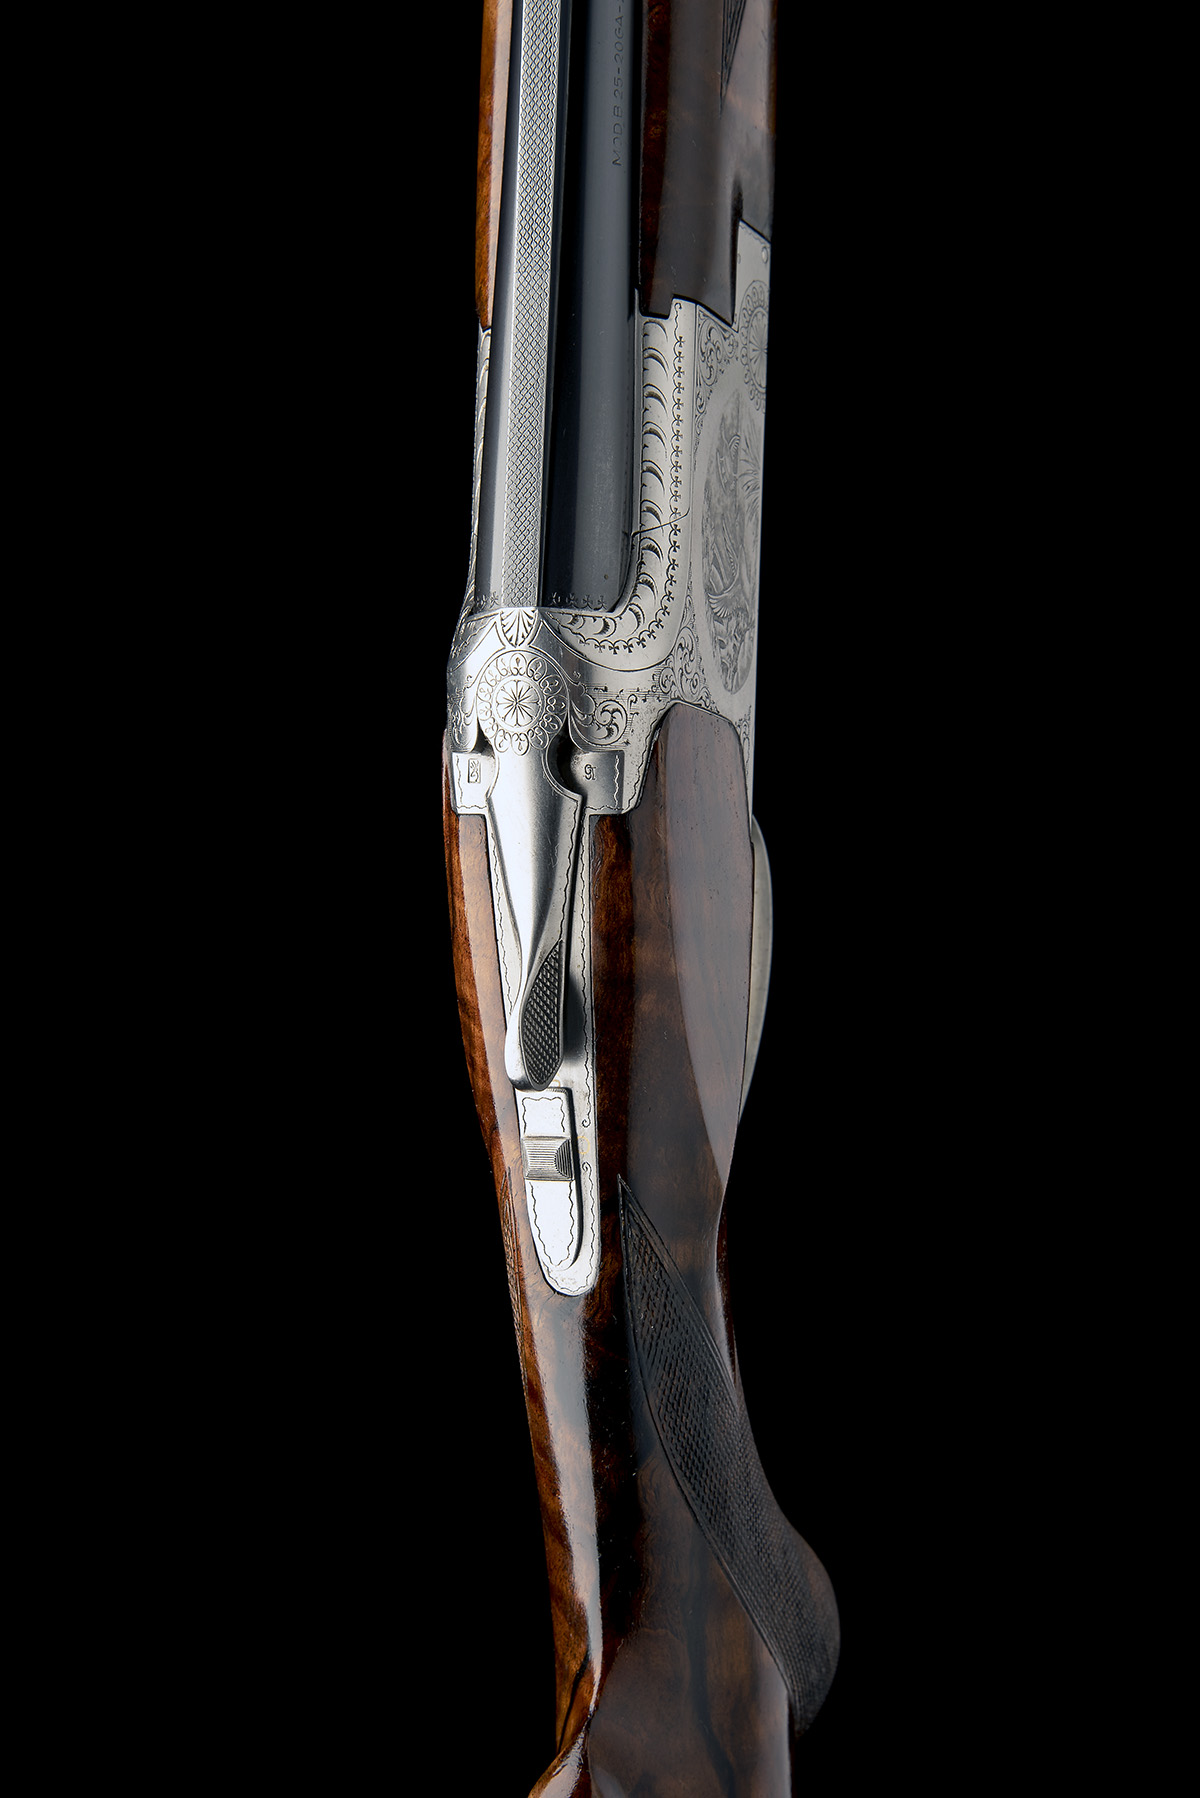 BROWNING ARMS COMPANY A PERFIDO-ENGRAVED 20-BORE 'MOD. B2G' SINGLE-TRIGGER OVER AND UNDER EJECTOR, - Image 6 of 11